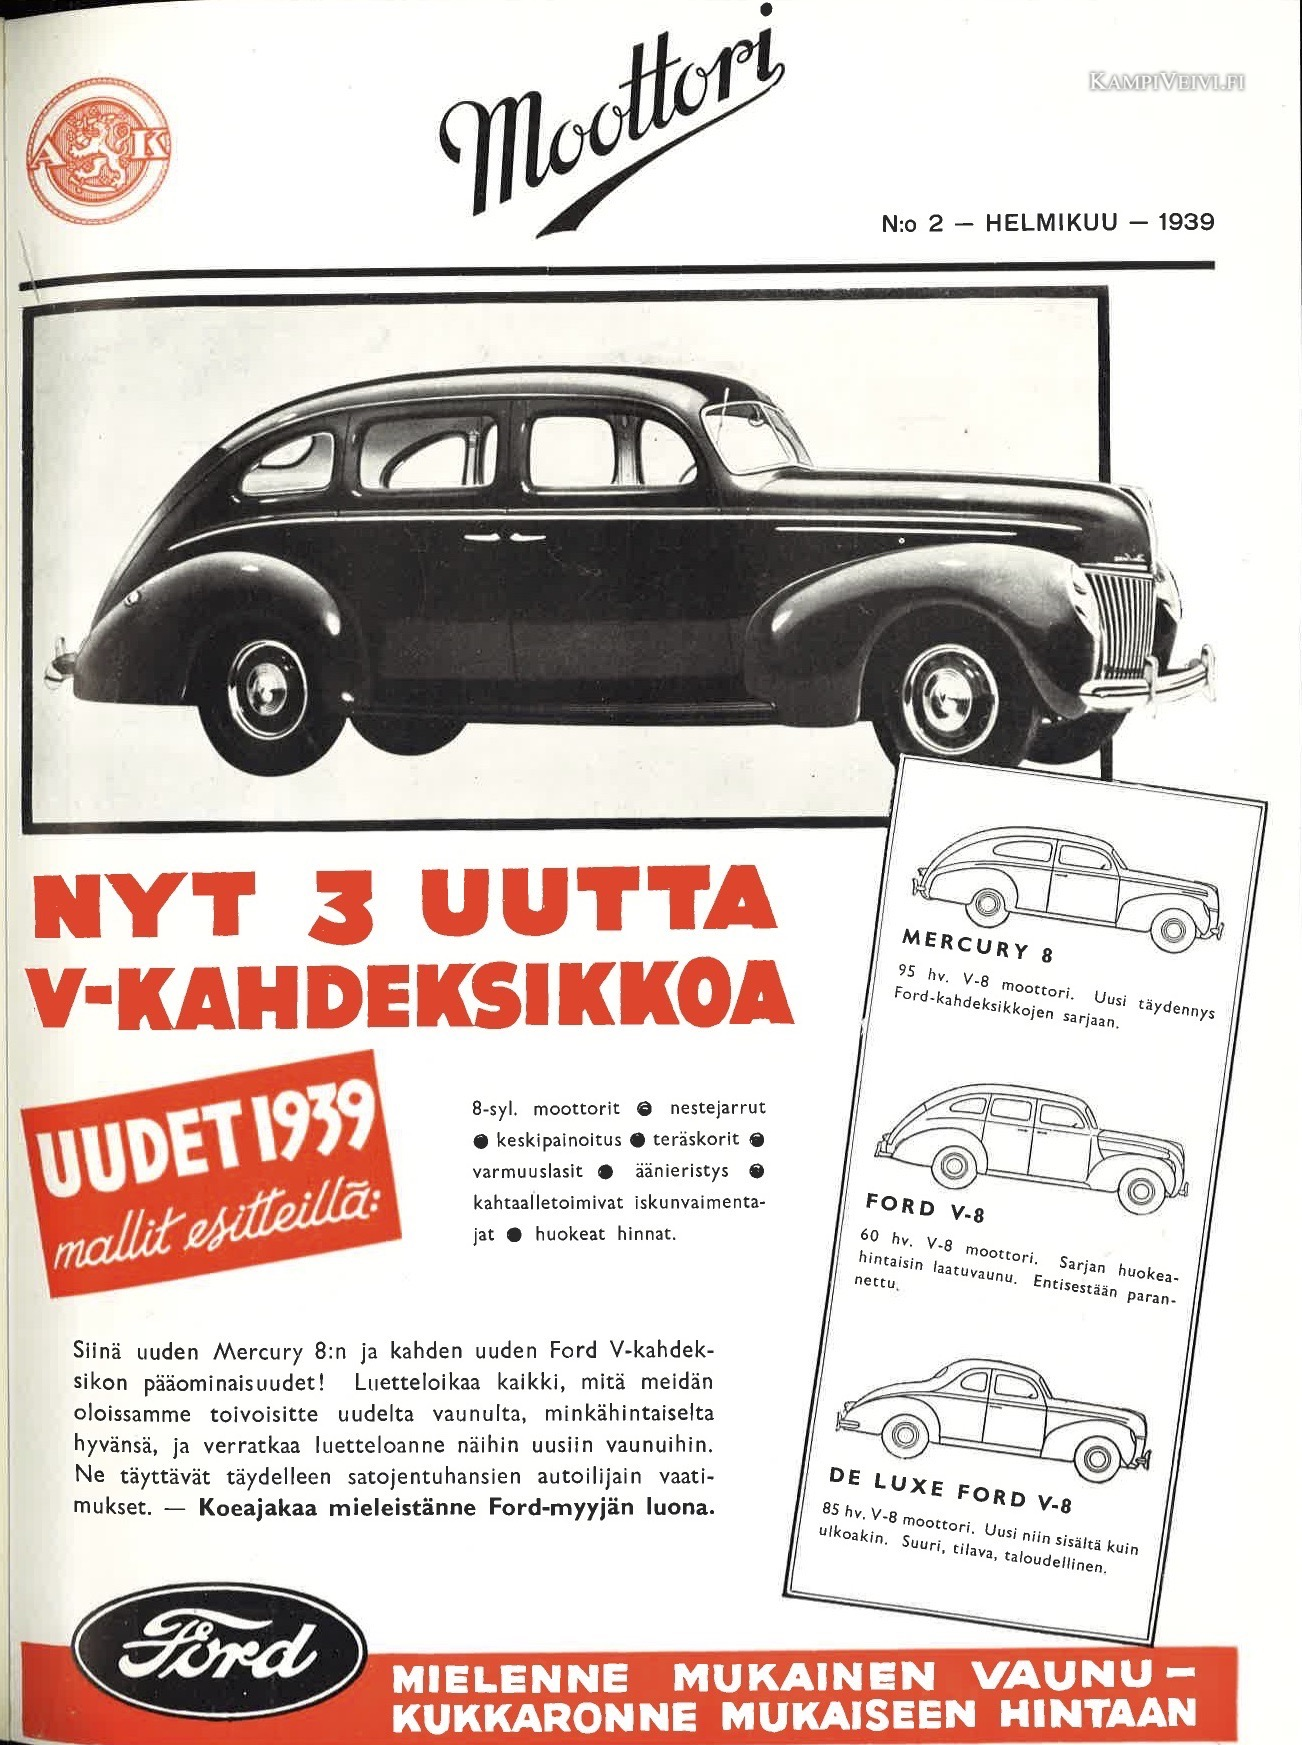 1939FordDeluxe-moottori